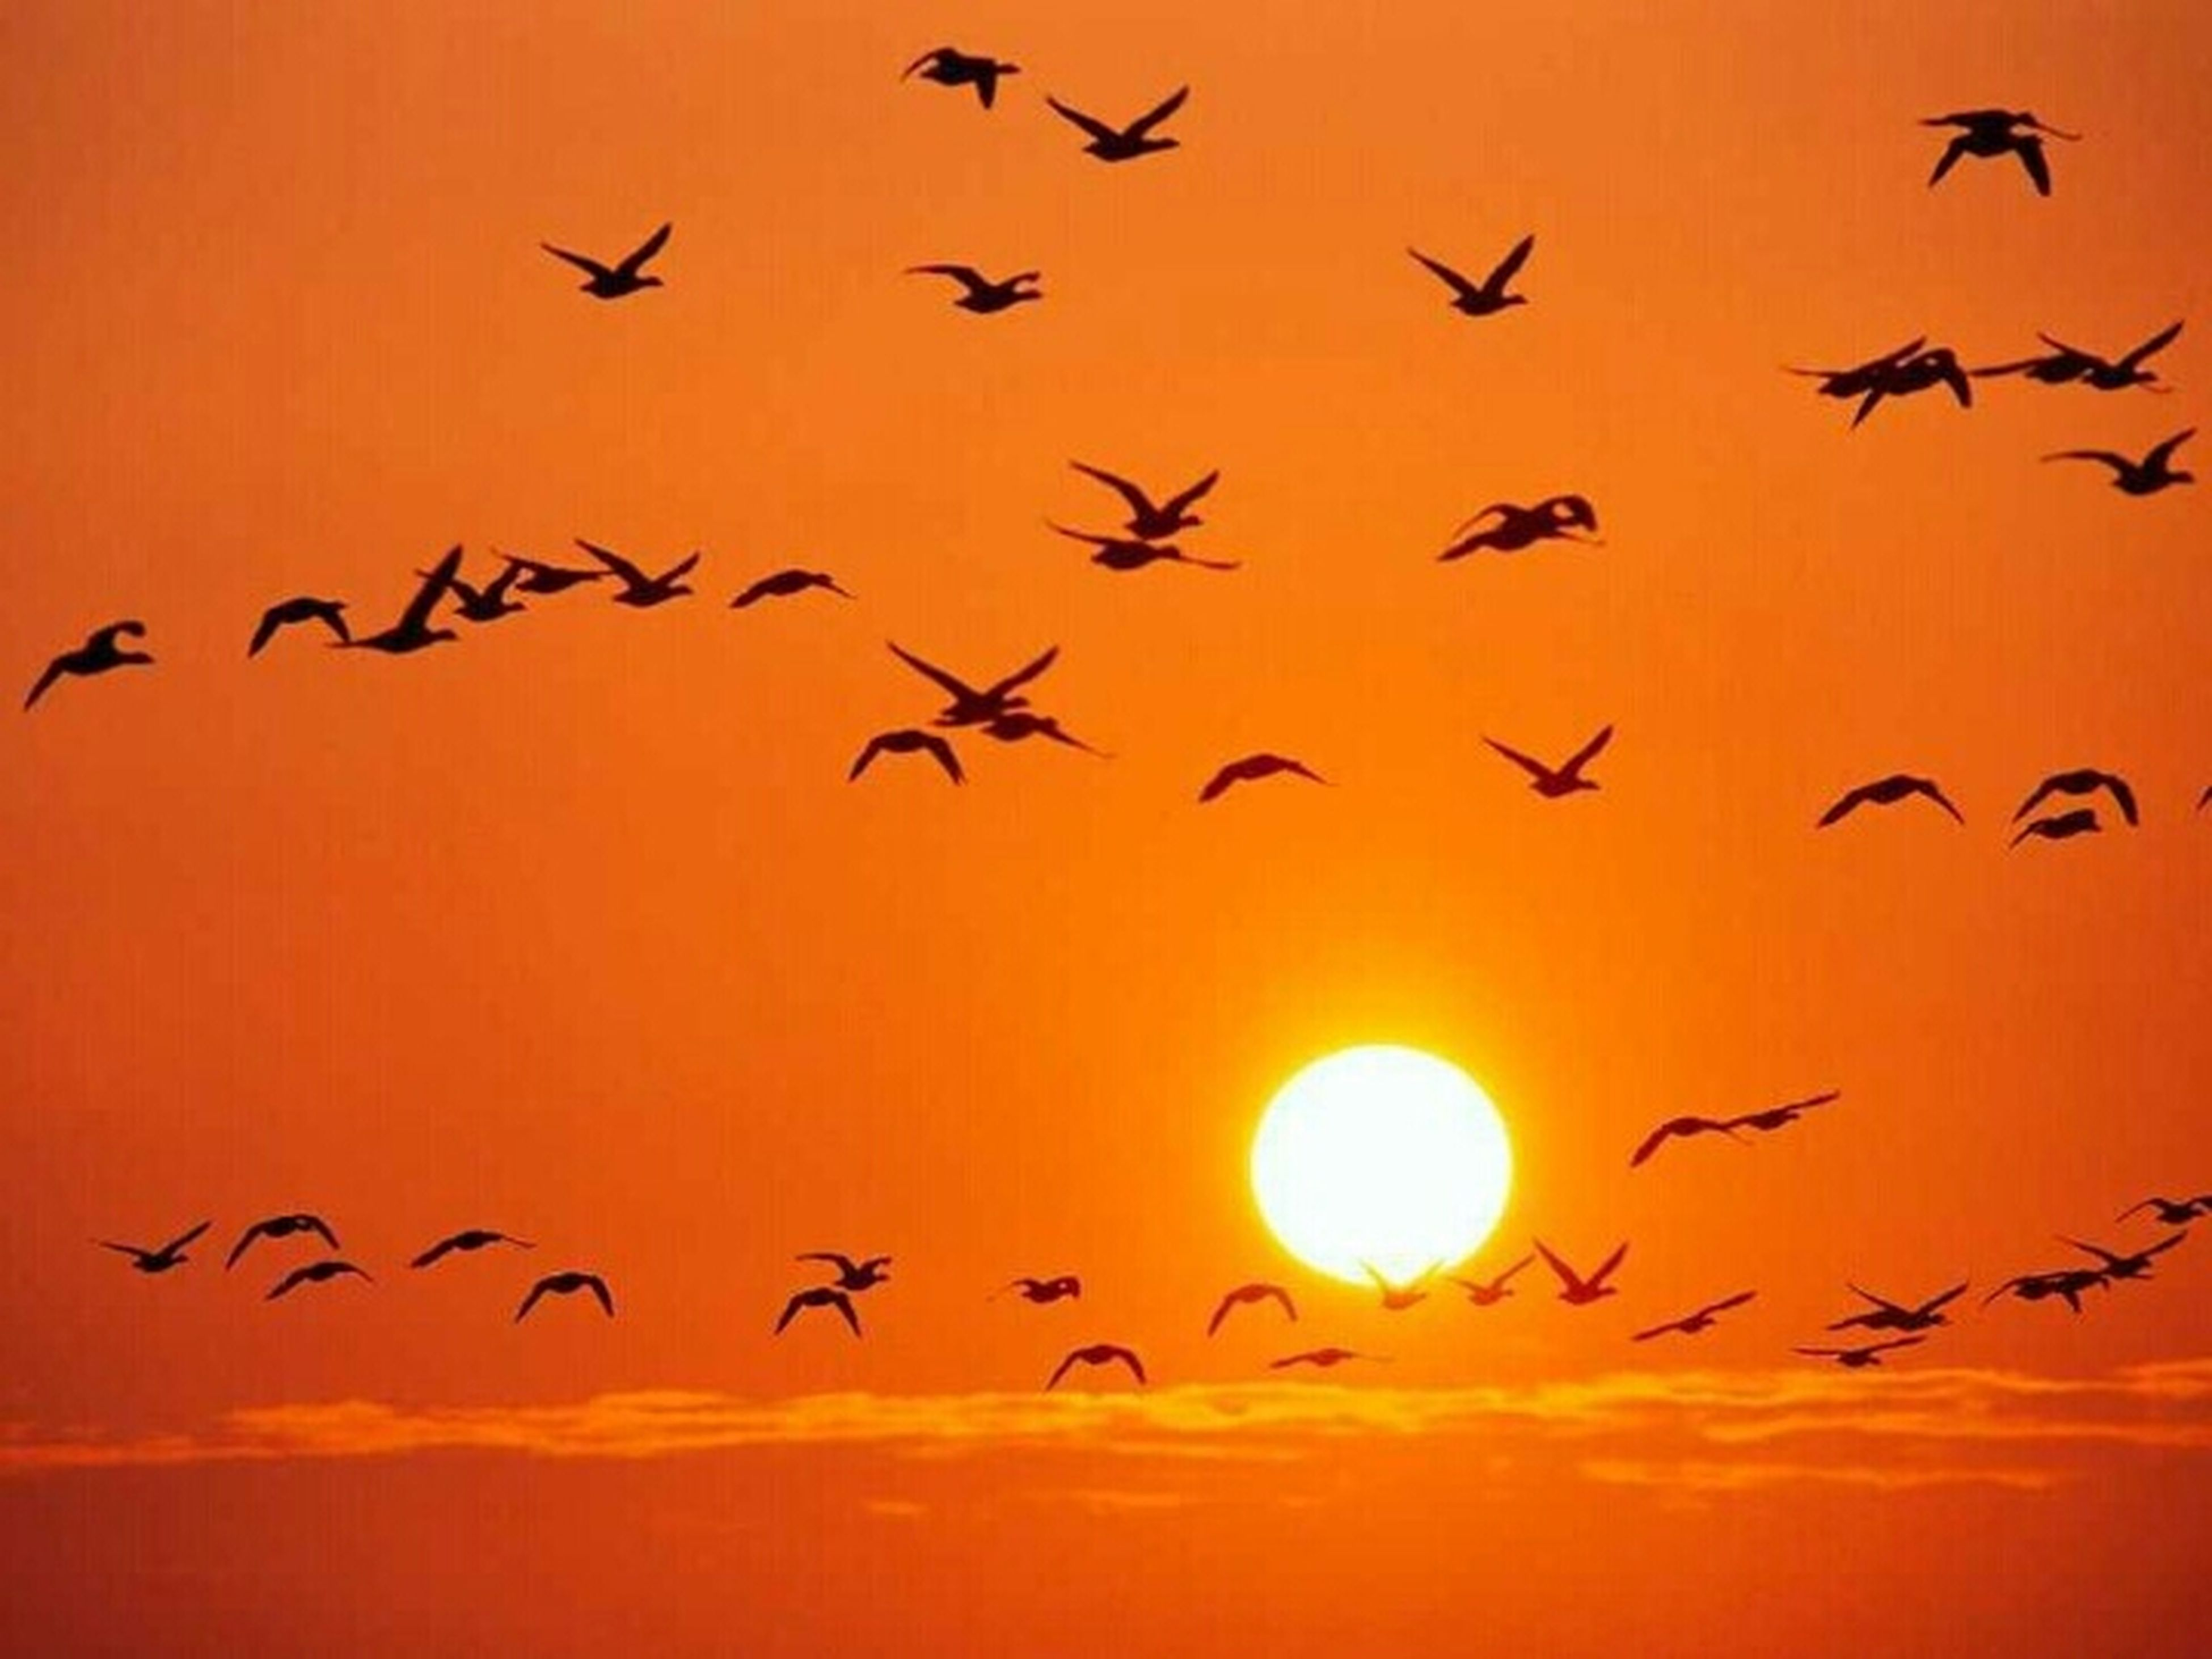 bird, flying, sunset, animal themes, animals in the wild, wildlife, flock of birds, silhouette, orange color, sun, low angle view, mid-air, sky, beauty in nature, nature, scenics, migrating, spread wings, medium group of animals